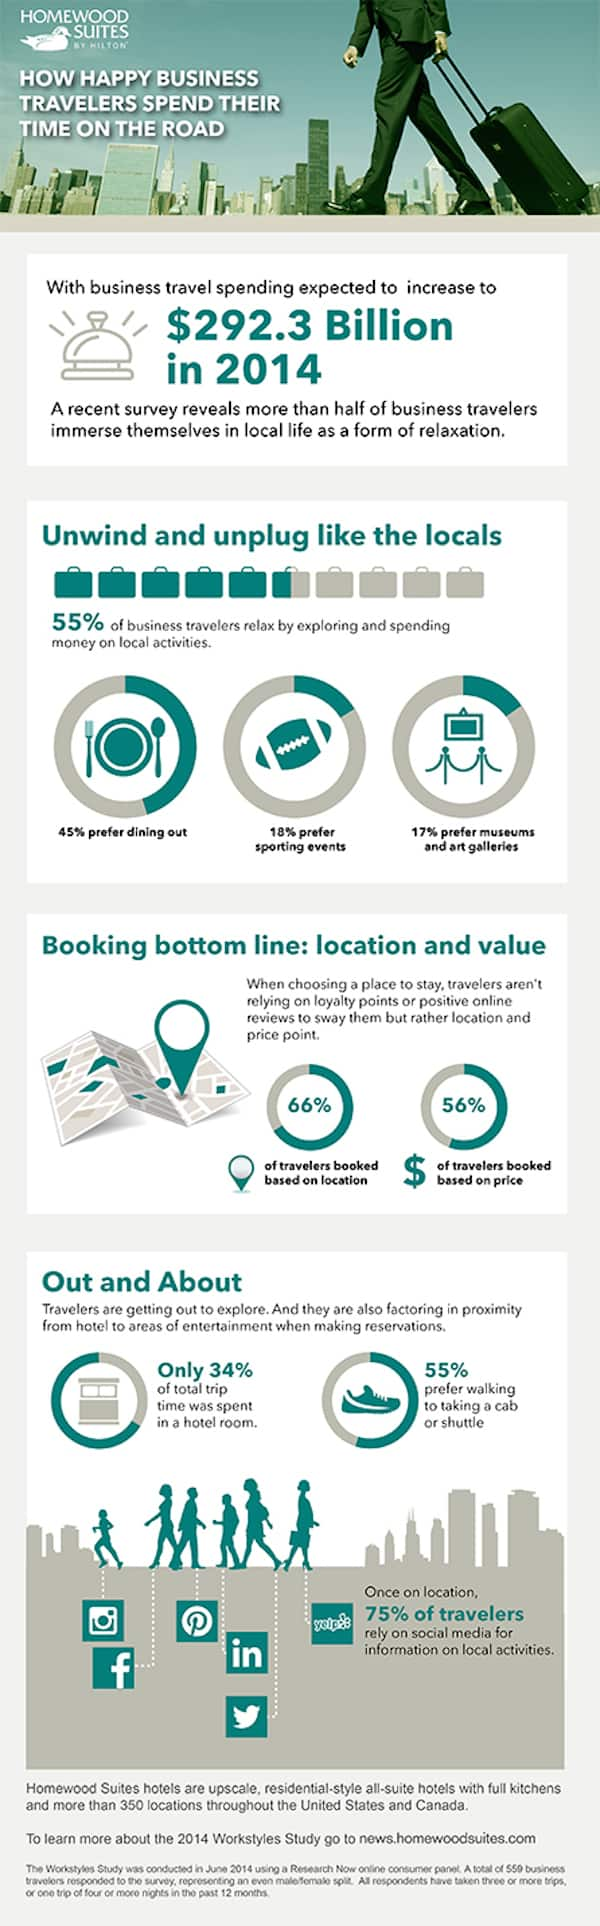 2014 Homewood Suites Workstyles Study